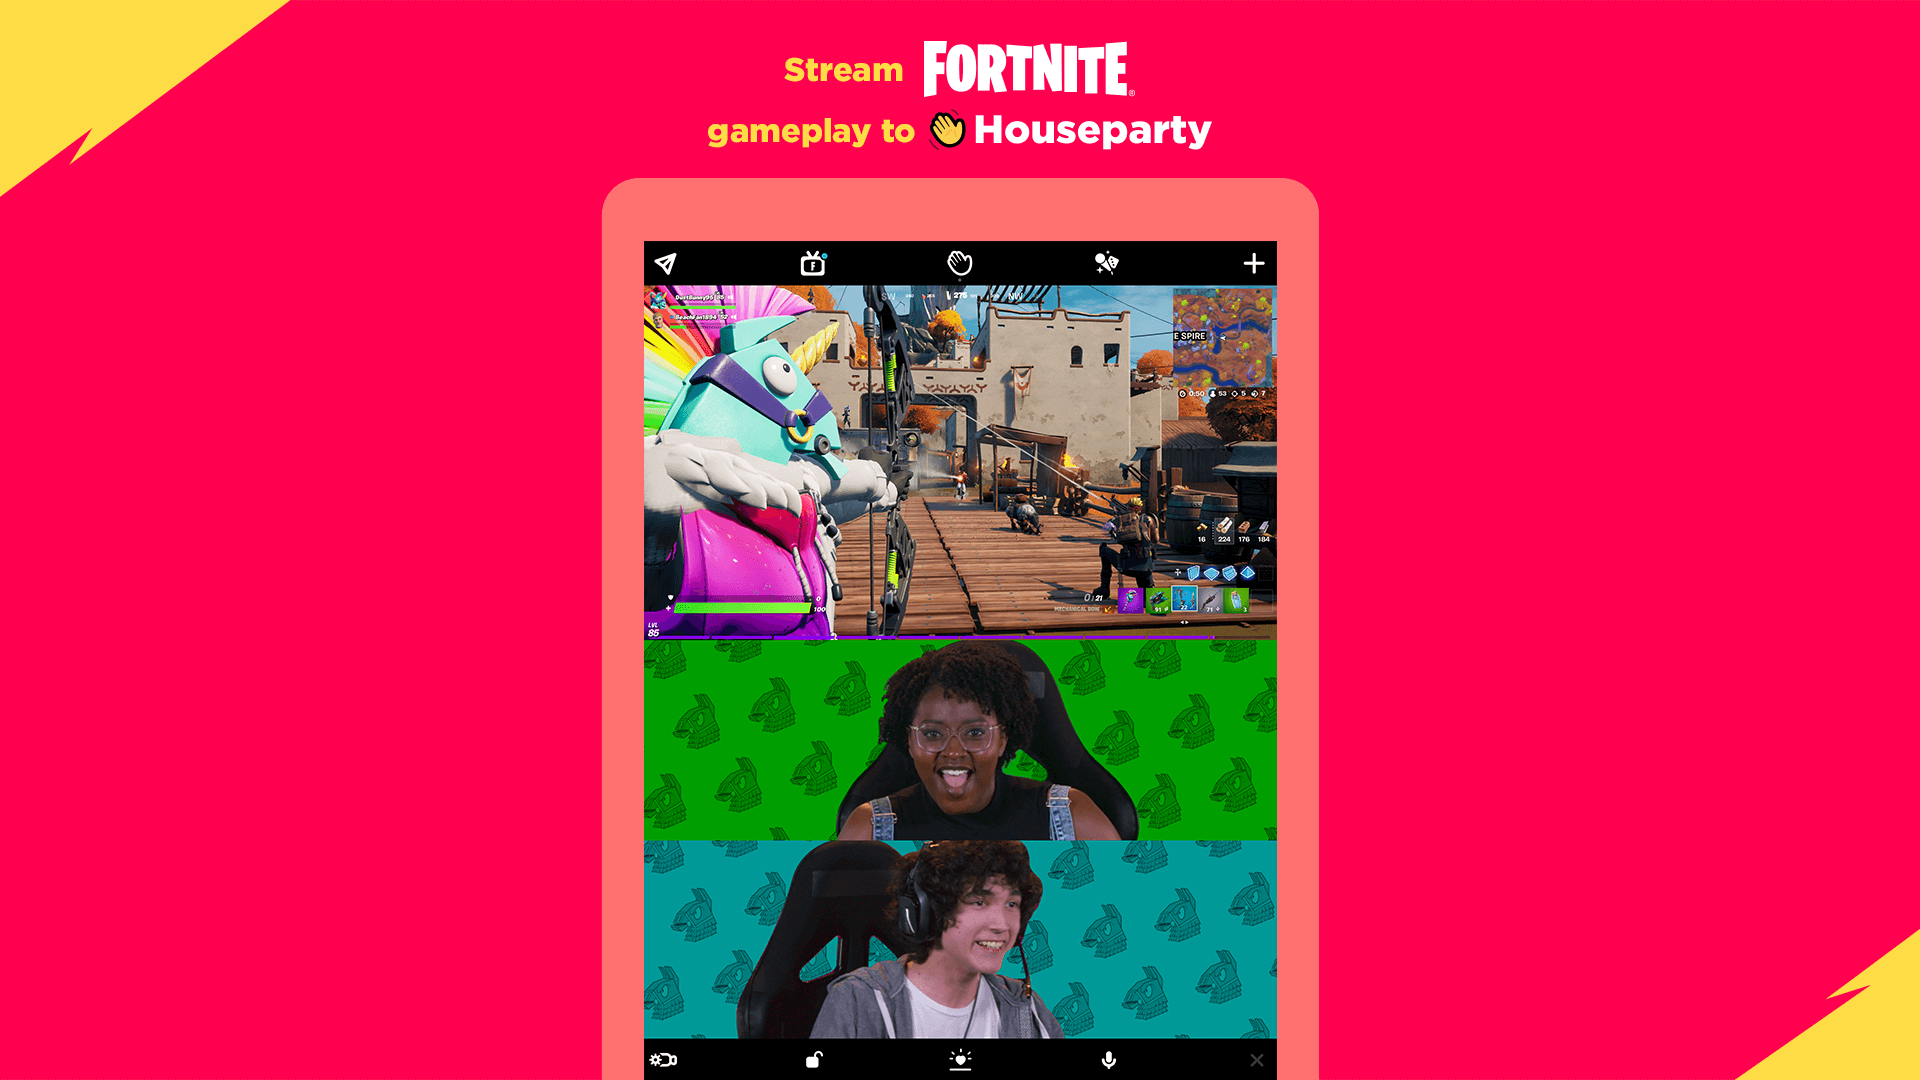 Stream Fortnite Gameplay To Houseparty